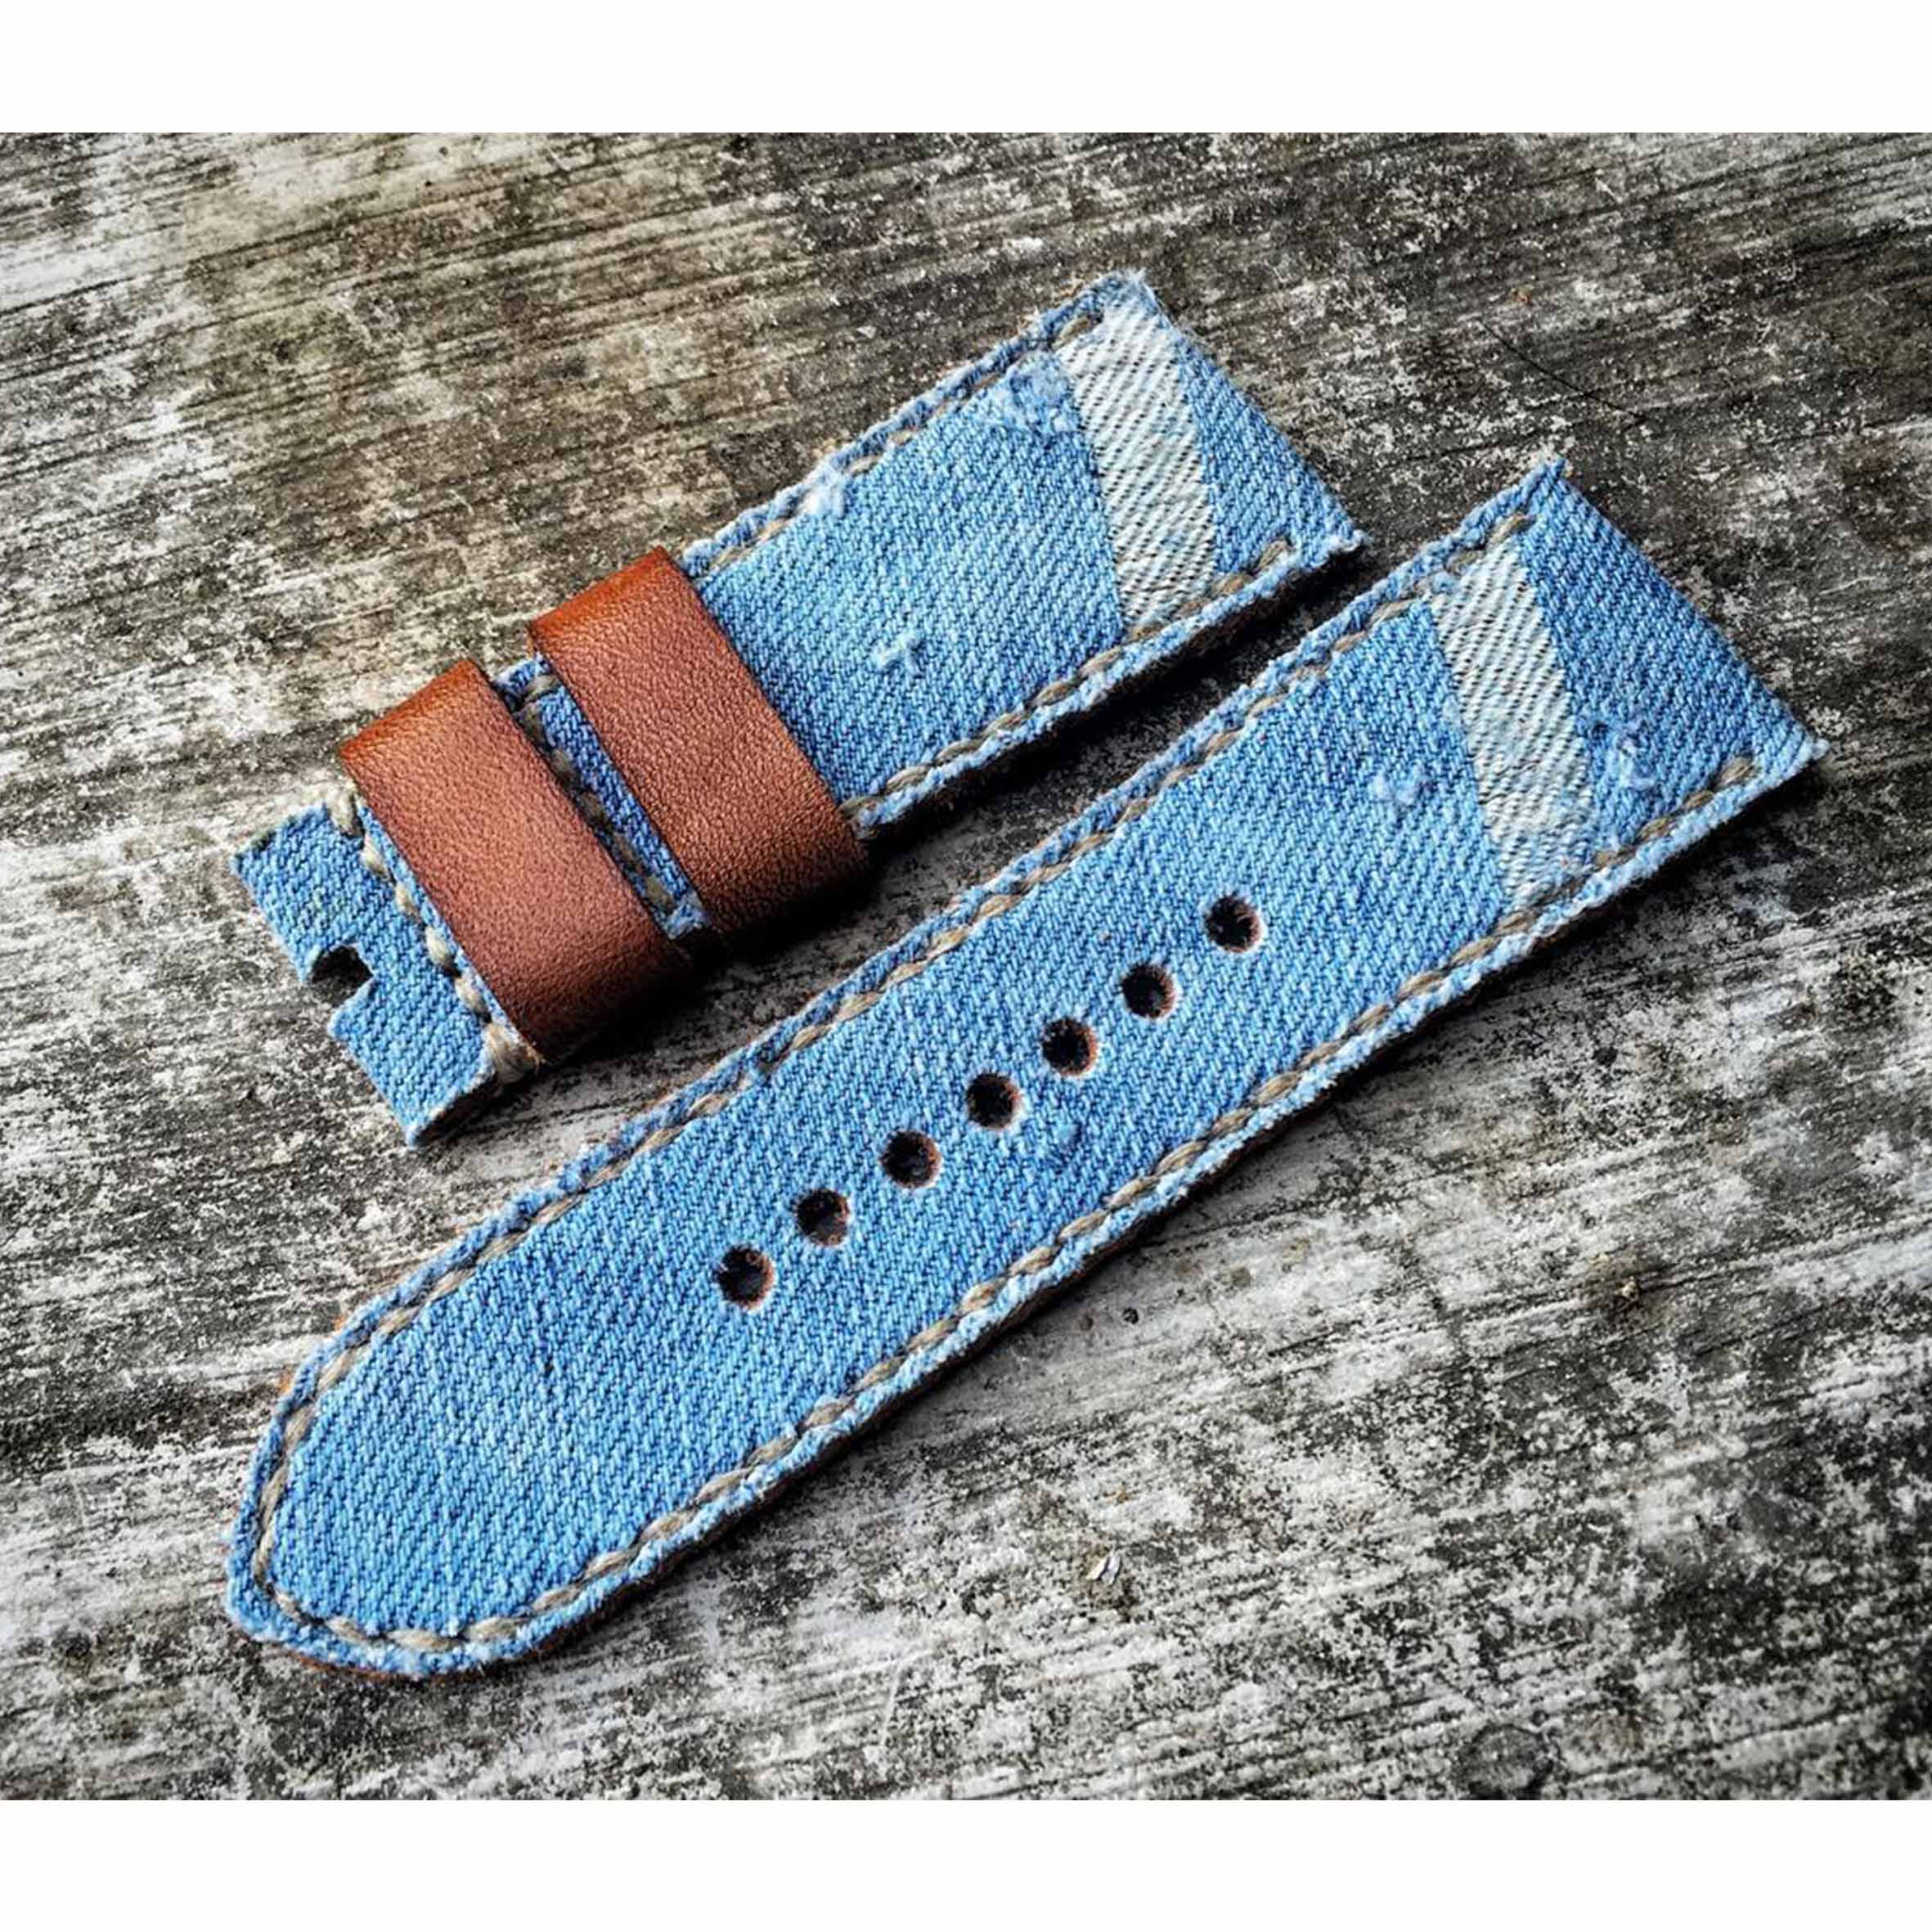 malio-straps-raw-denim-strapsonly (1)